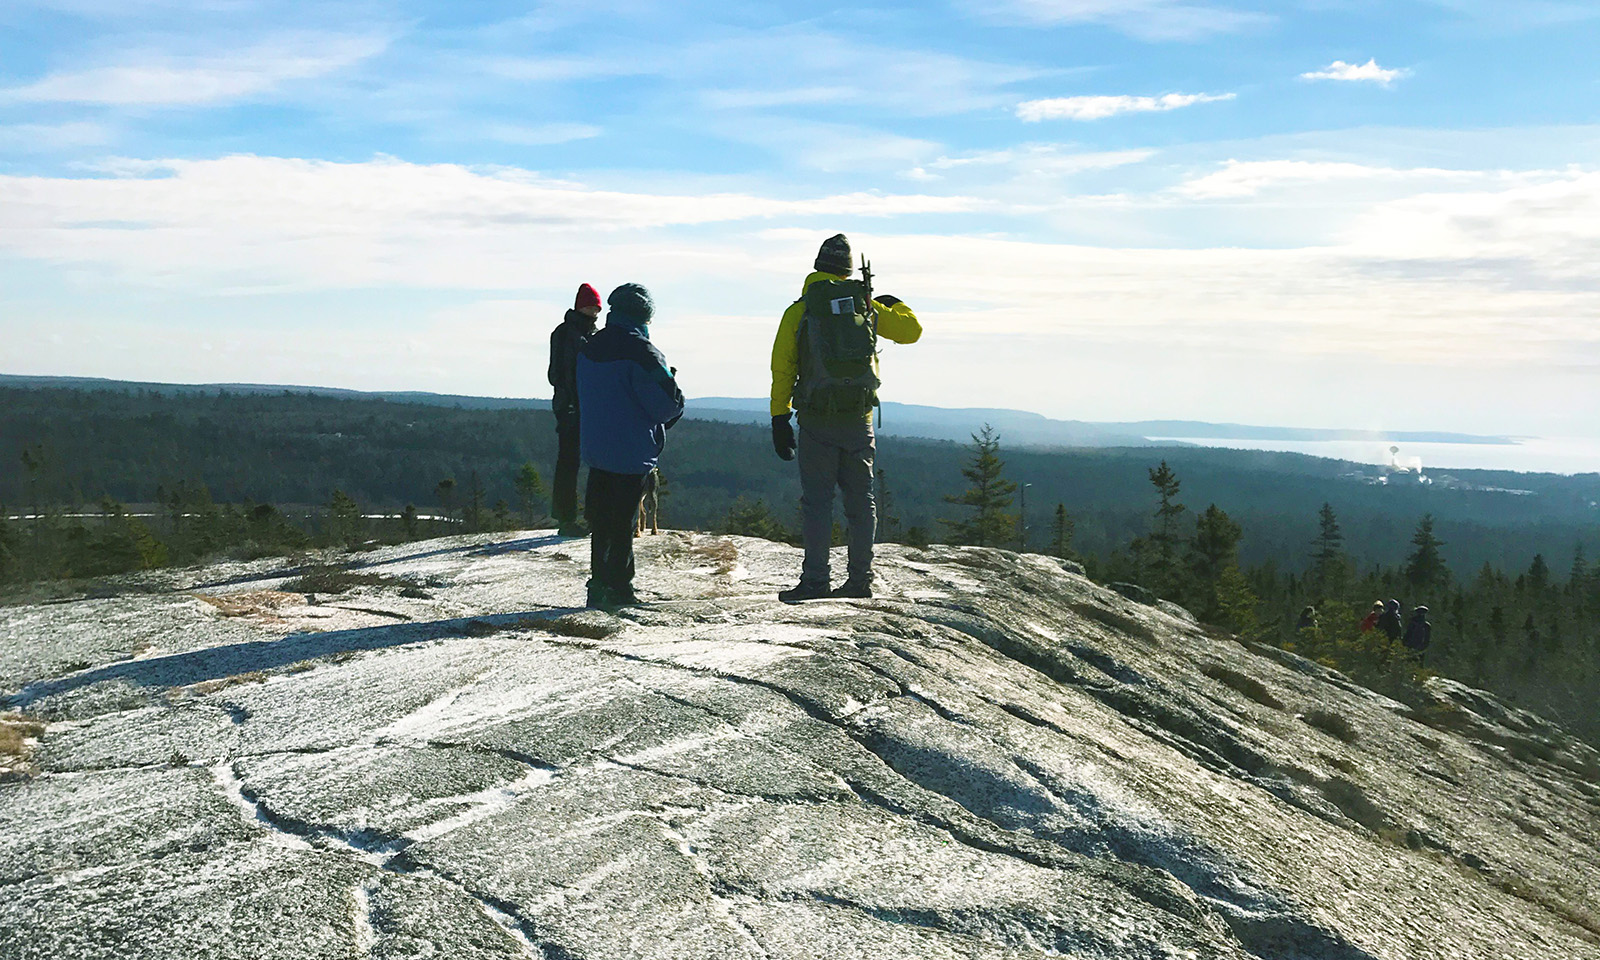 three people overlooking the forest from a high rock outcropping